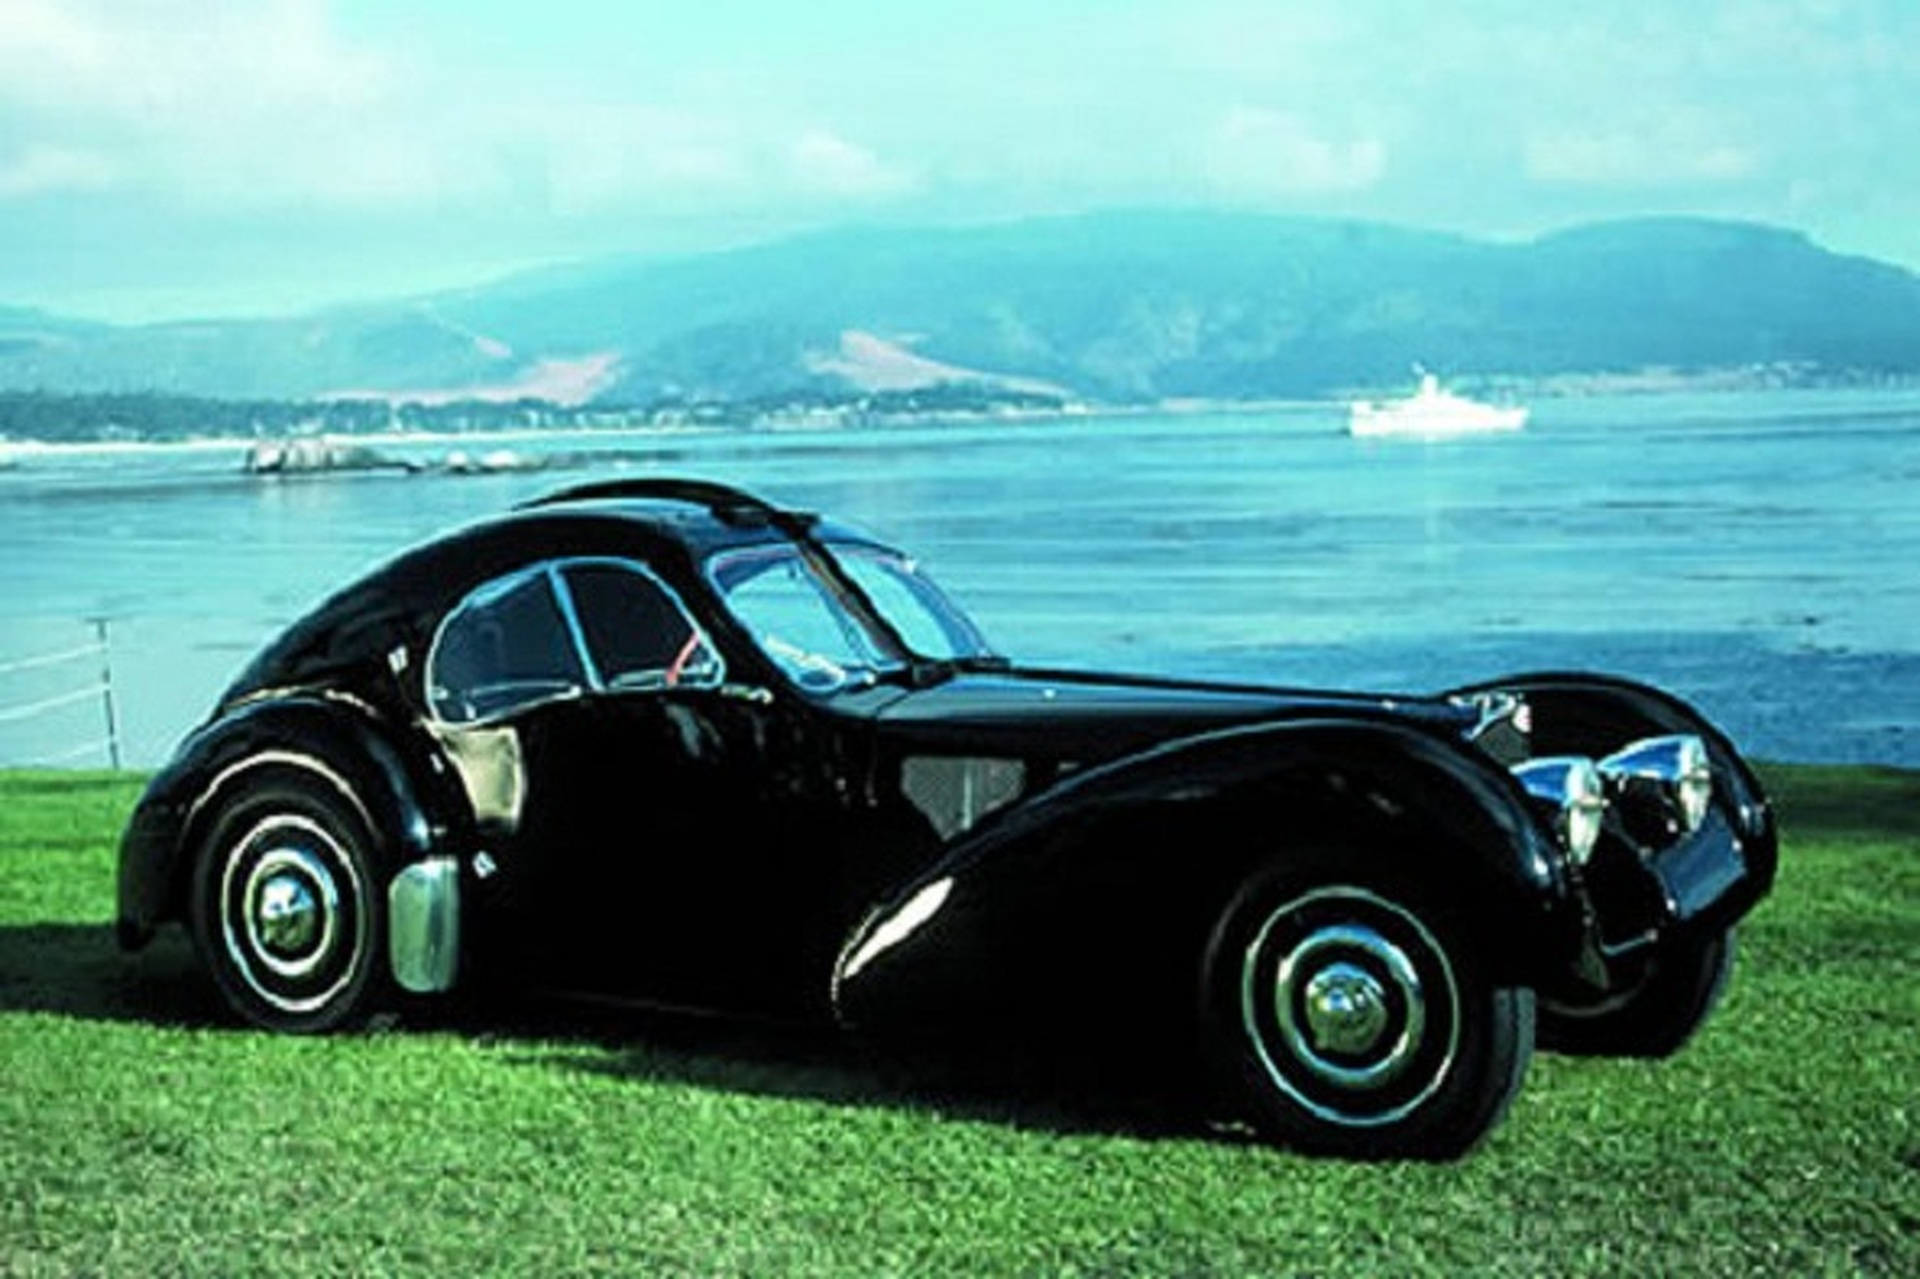 The 5 Most Elegant Past Winners of the Pebble Beach Concours d'Elegance